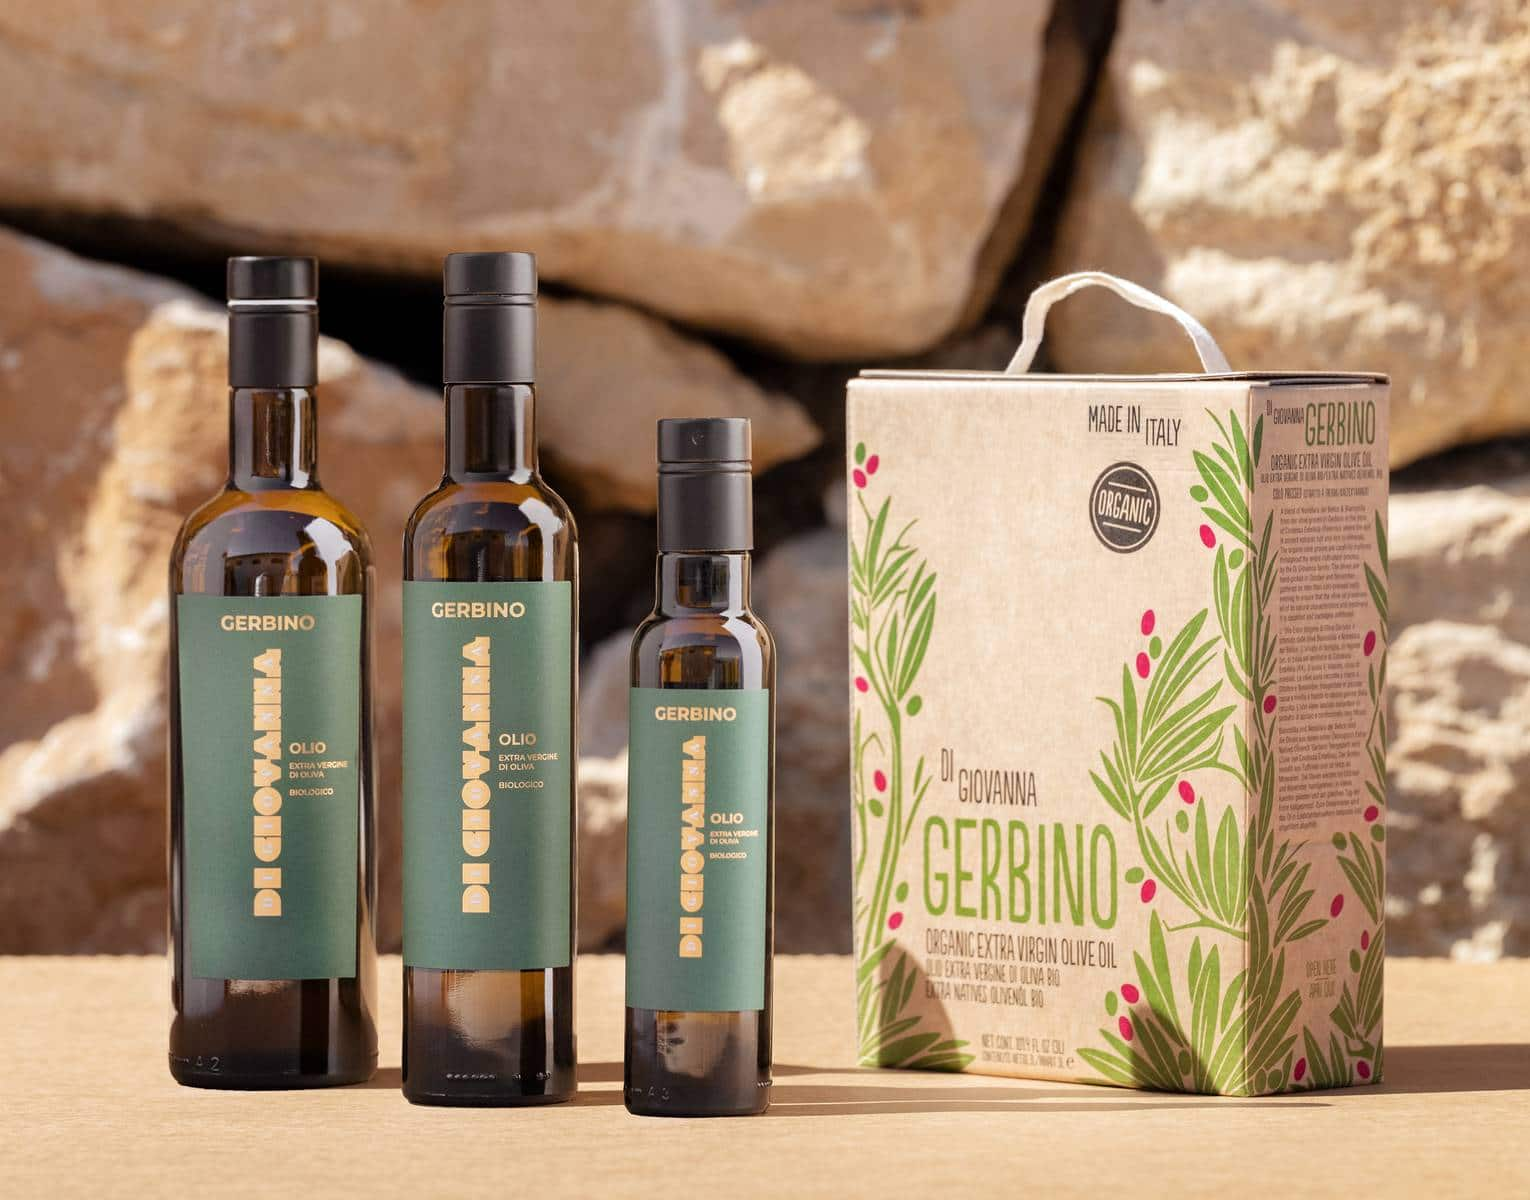 Gerbino Organic Extra Virgin Olive Oil 750 ml, 500 ml, 250 ml bottles, 3 Liter Bag in Box